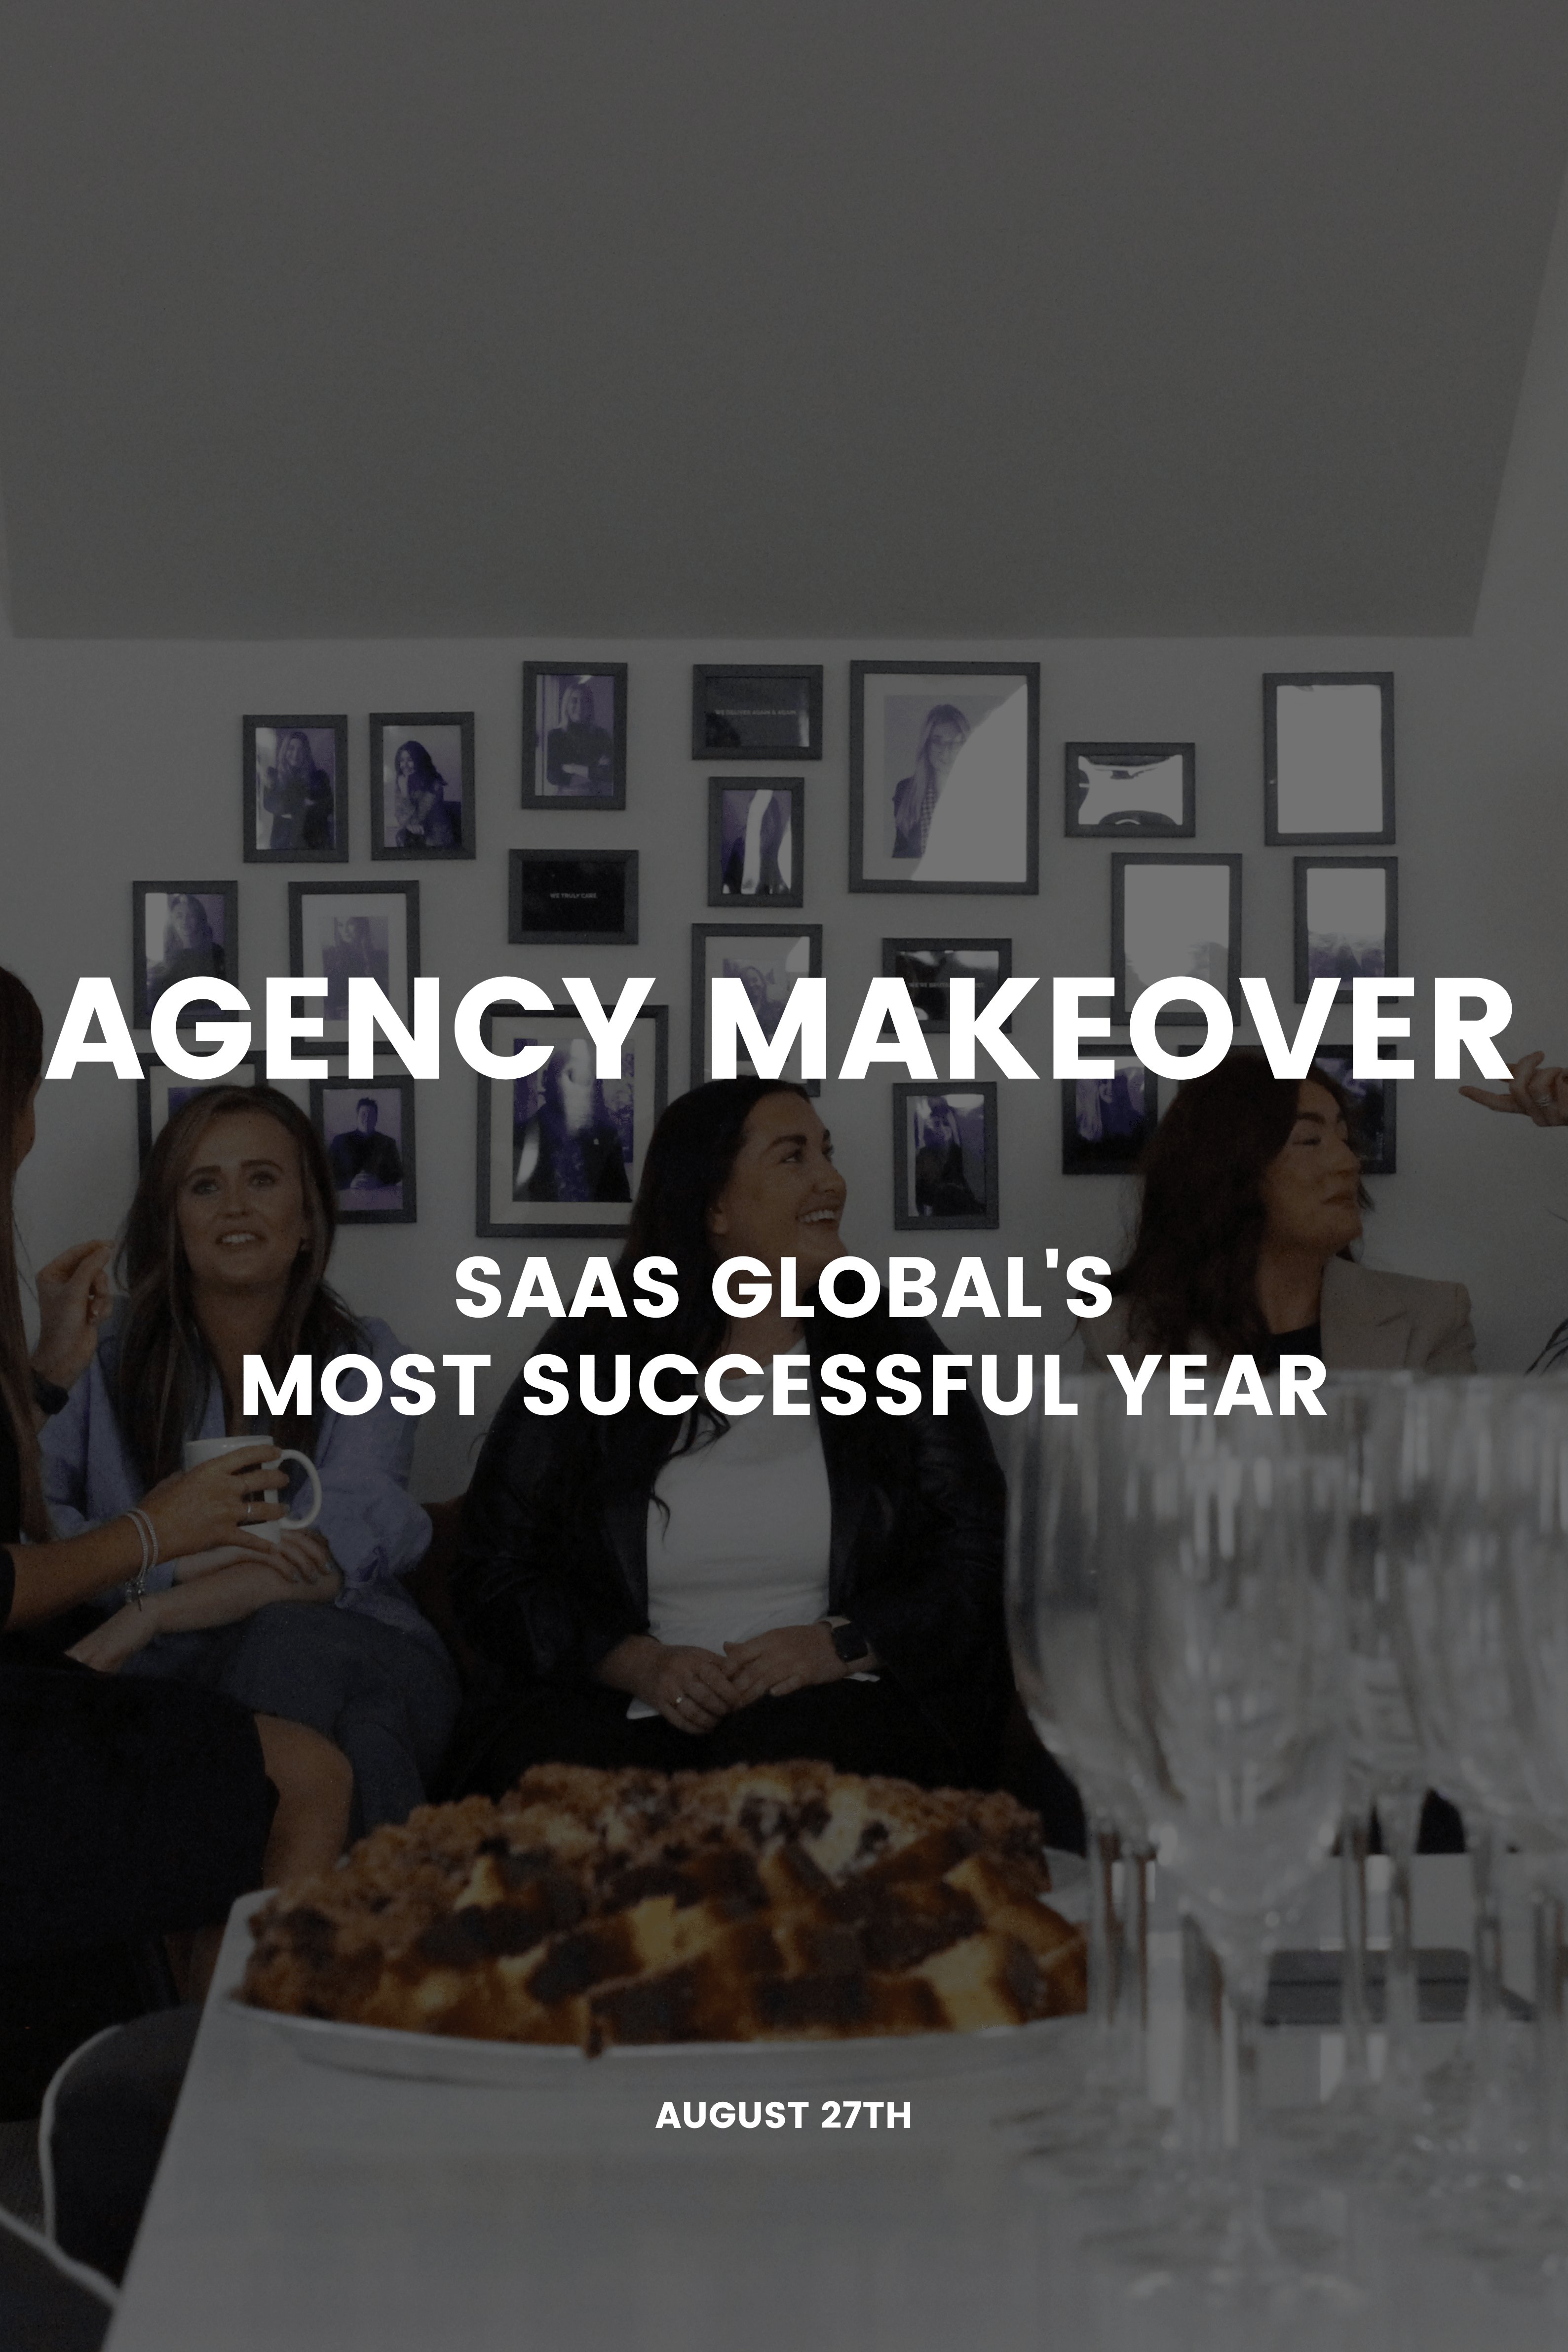 Agency Makeover Marks Most Successful Year for SAAS Global's Sister Companies